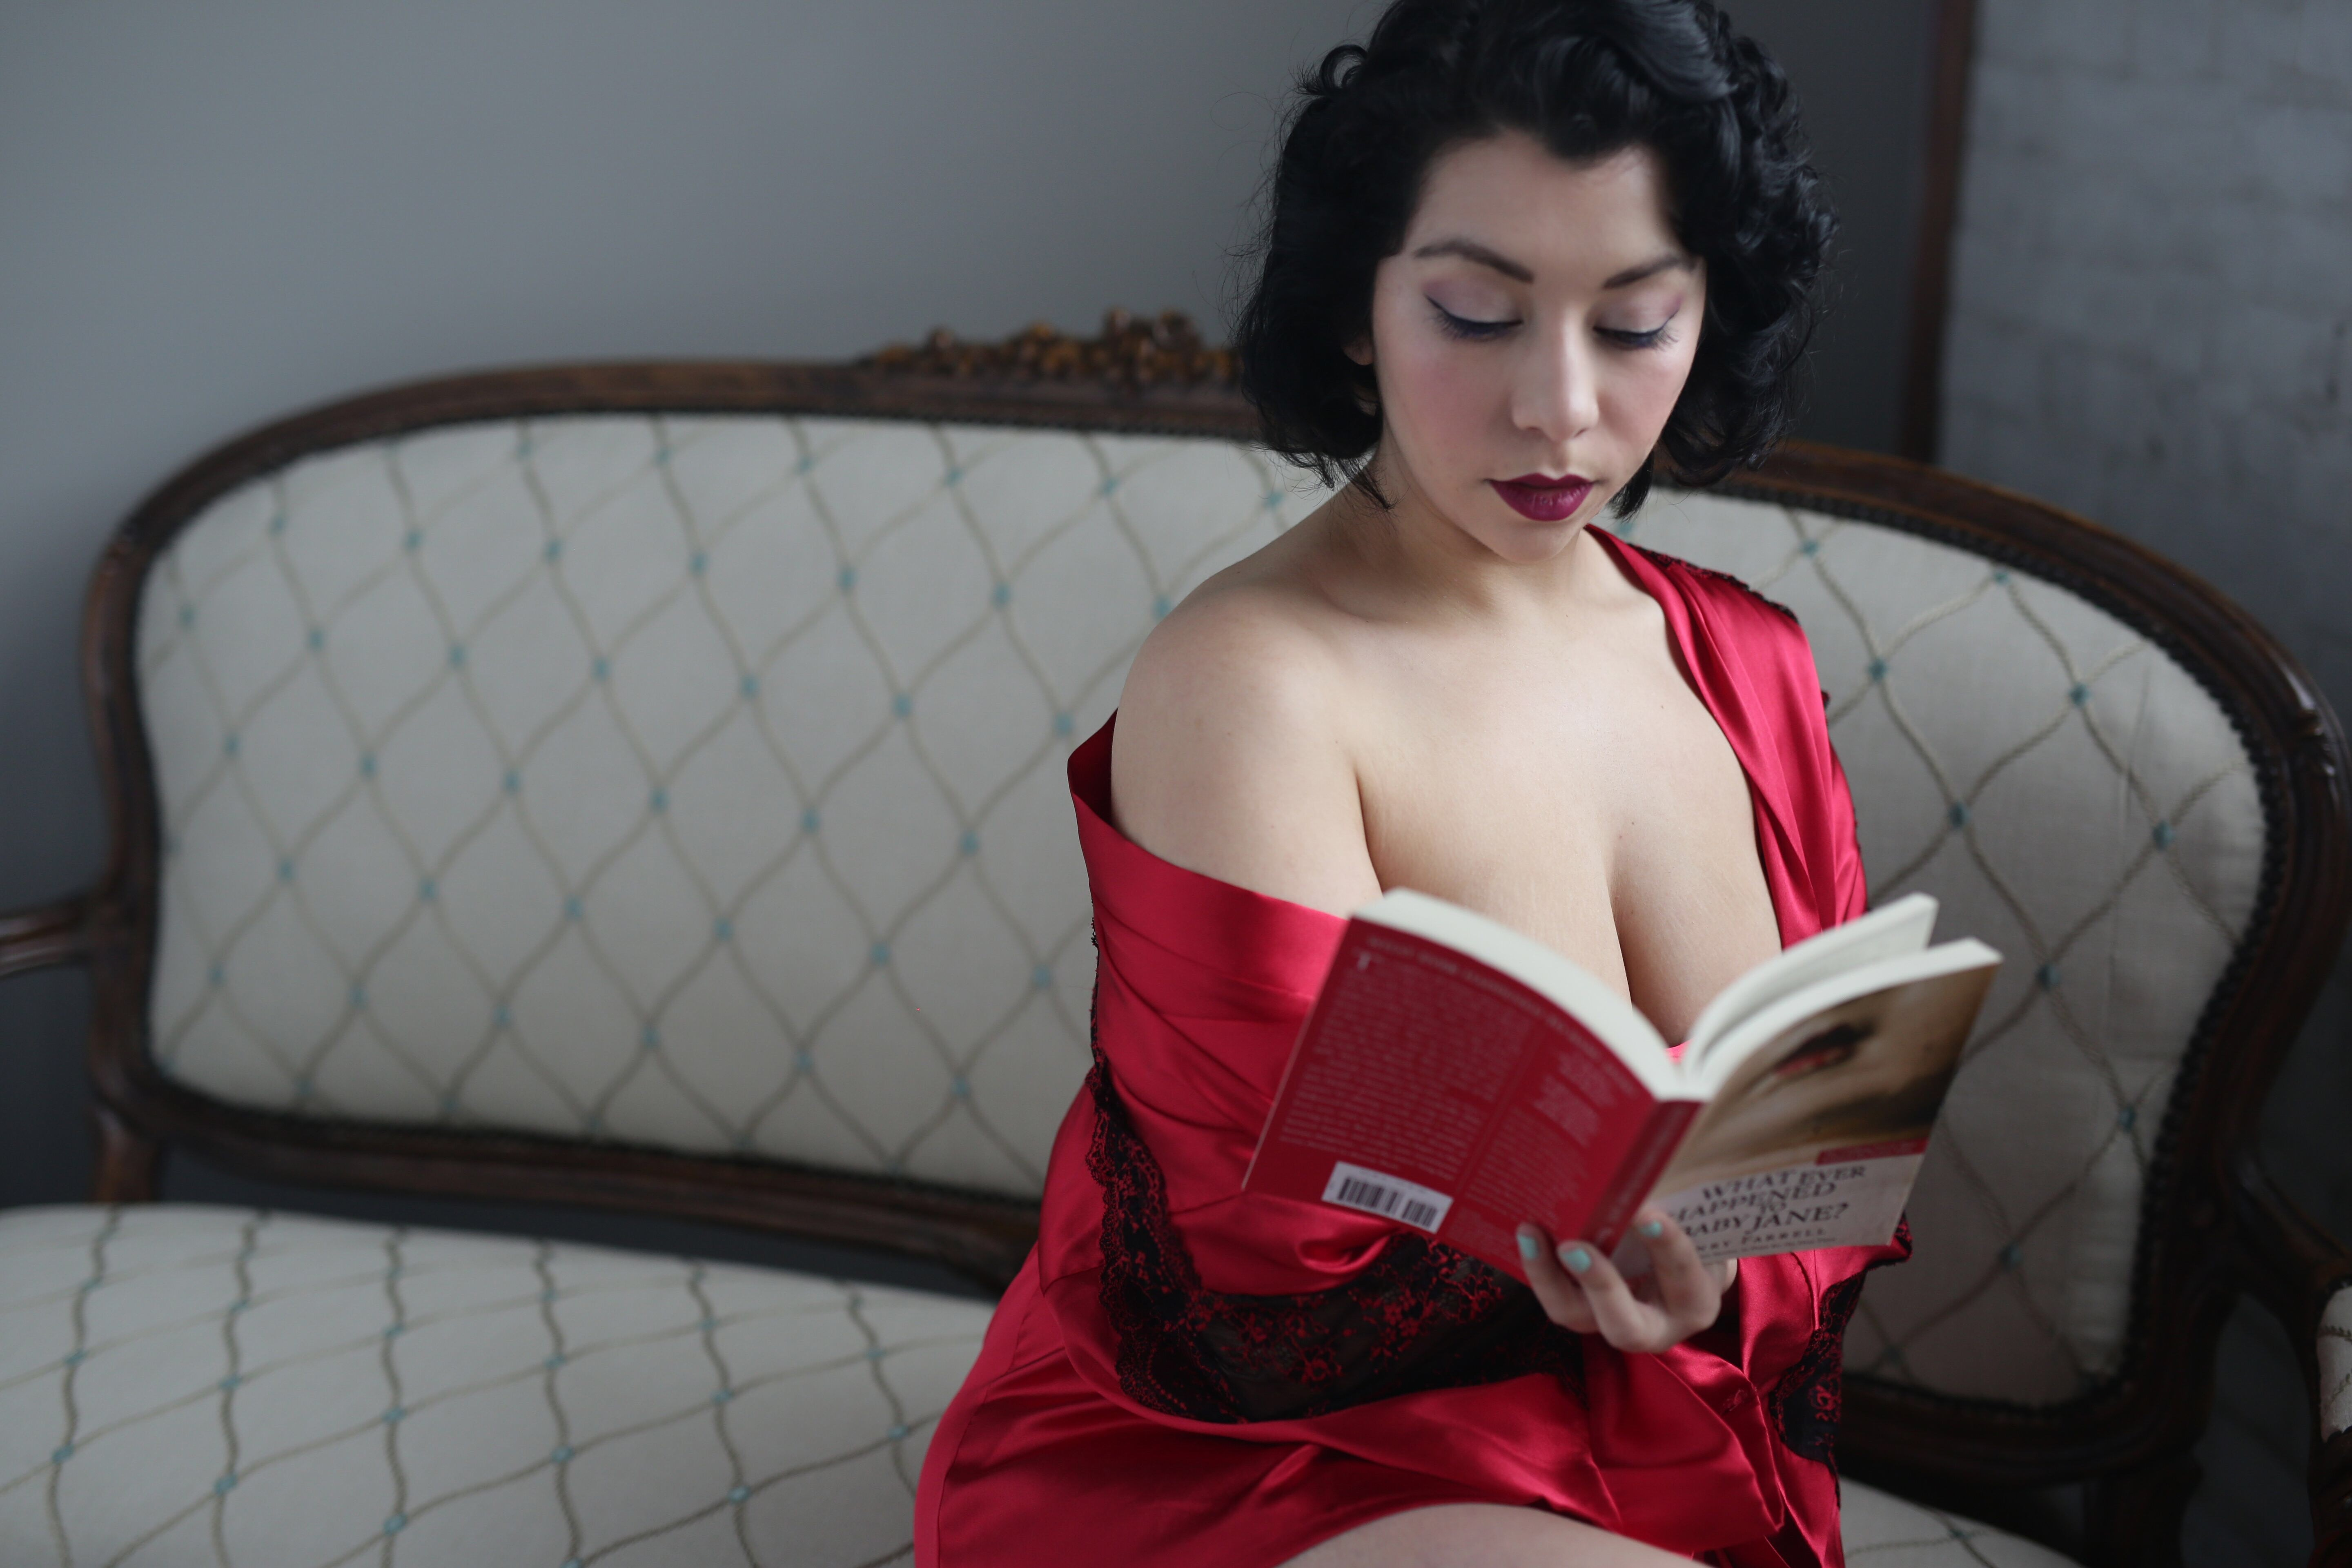 This Month's Naked Girls Reading Puts a New Spin on Nudie Films